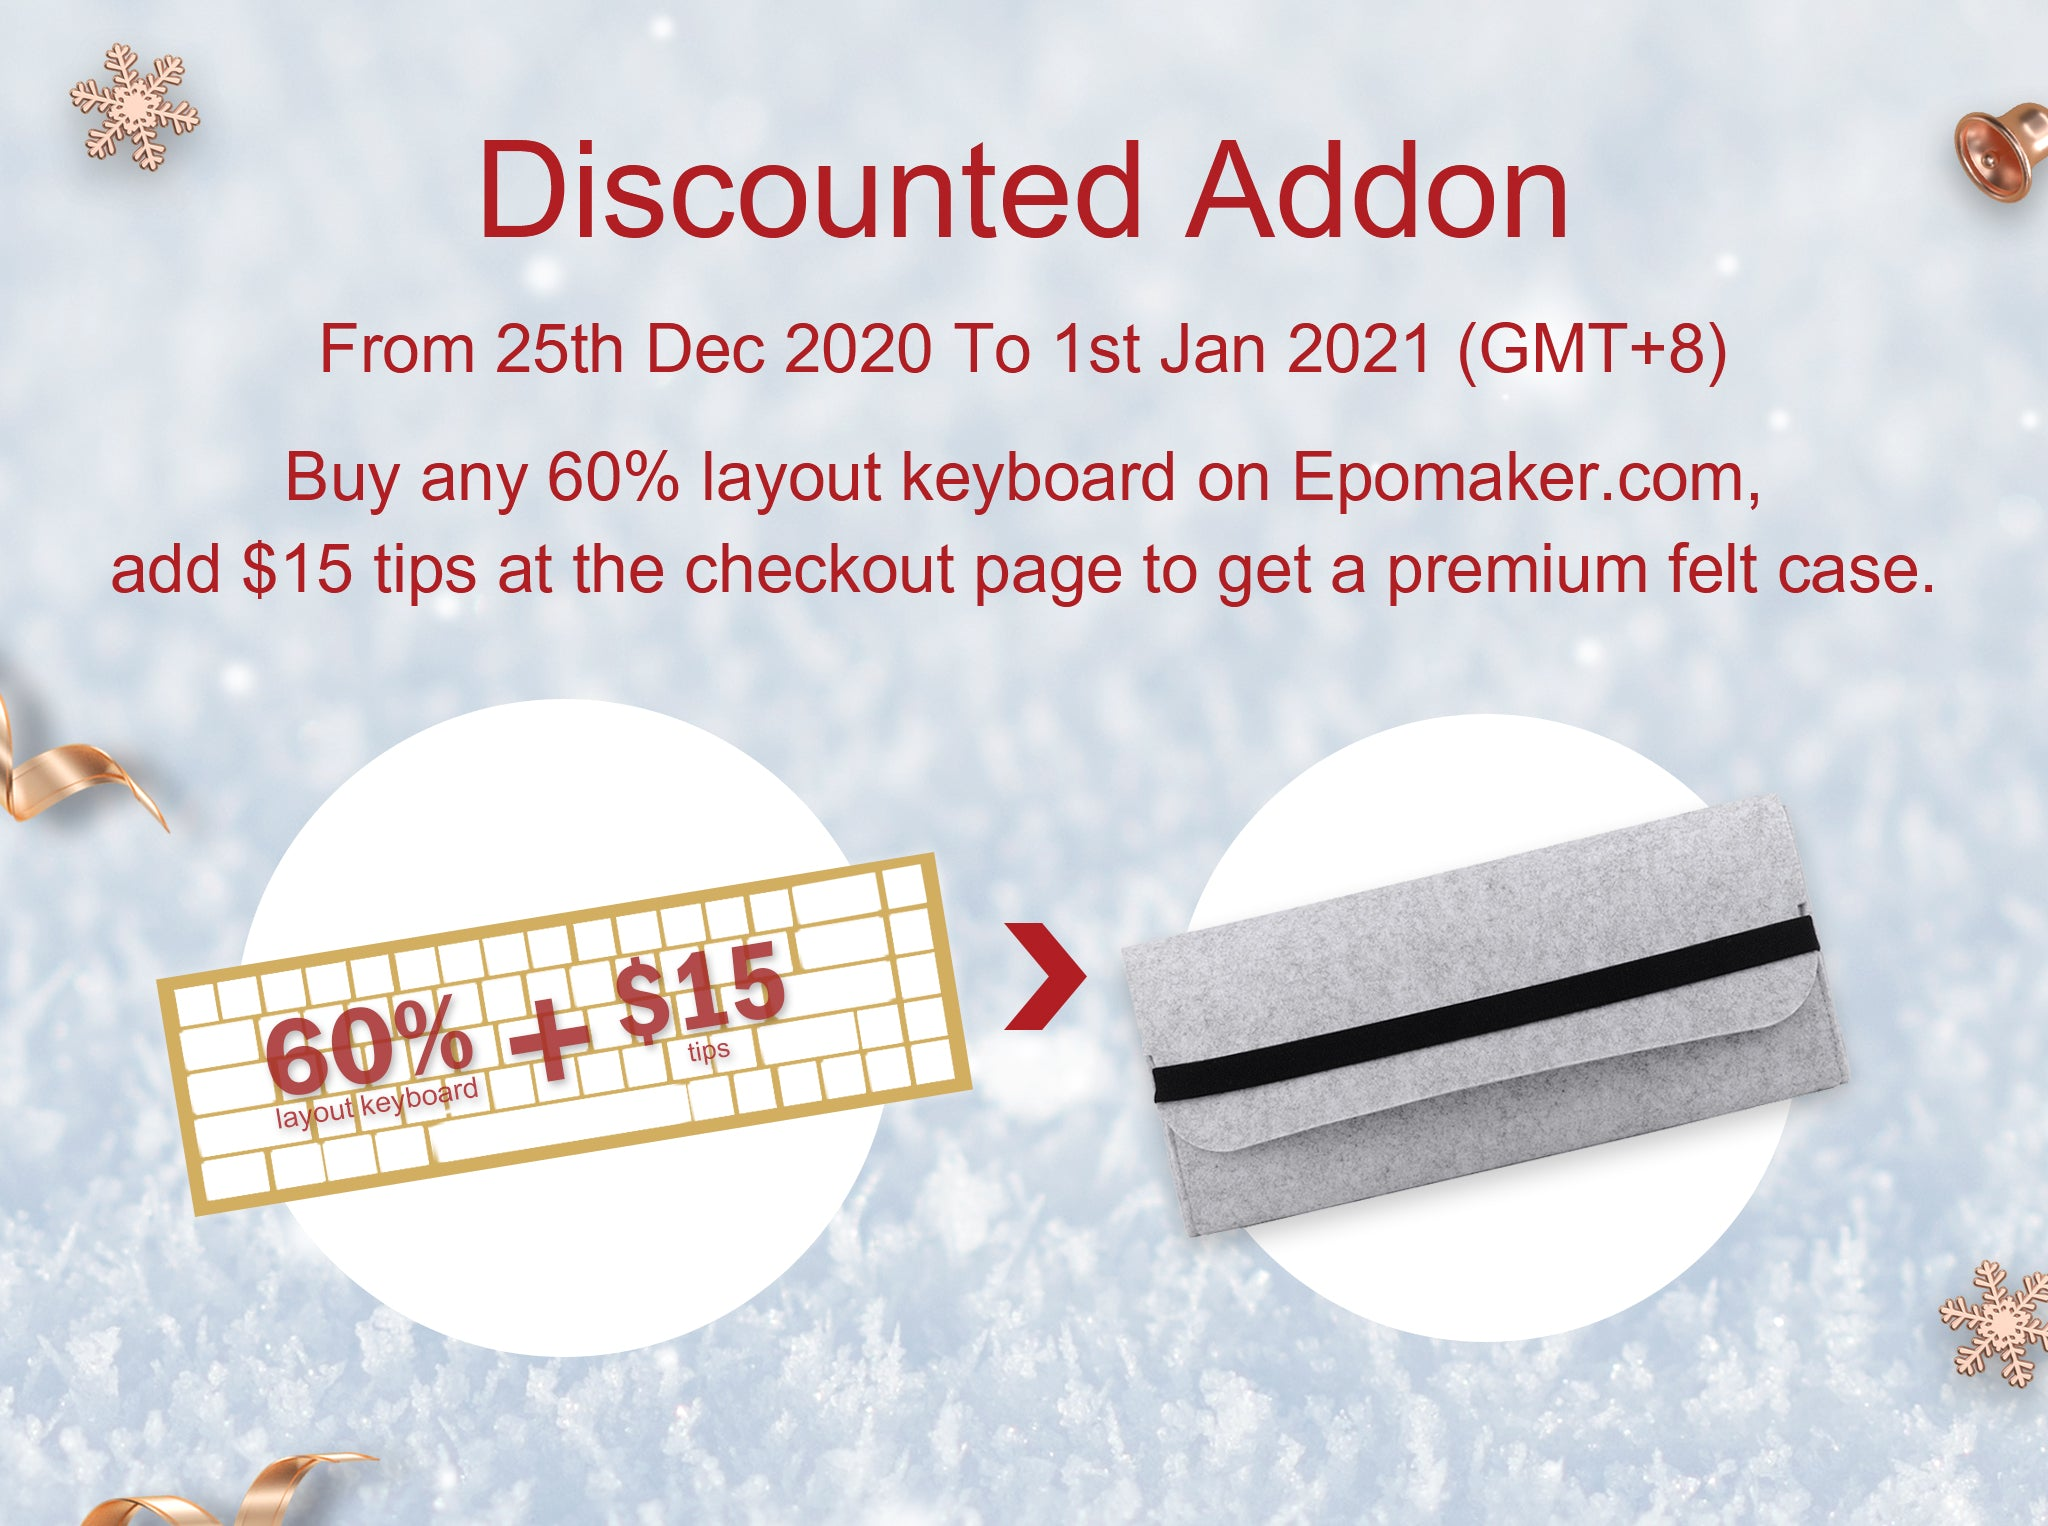 Free addon buy any 60% layout keyboard to get a carrying bag